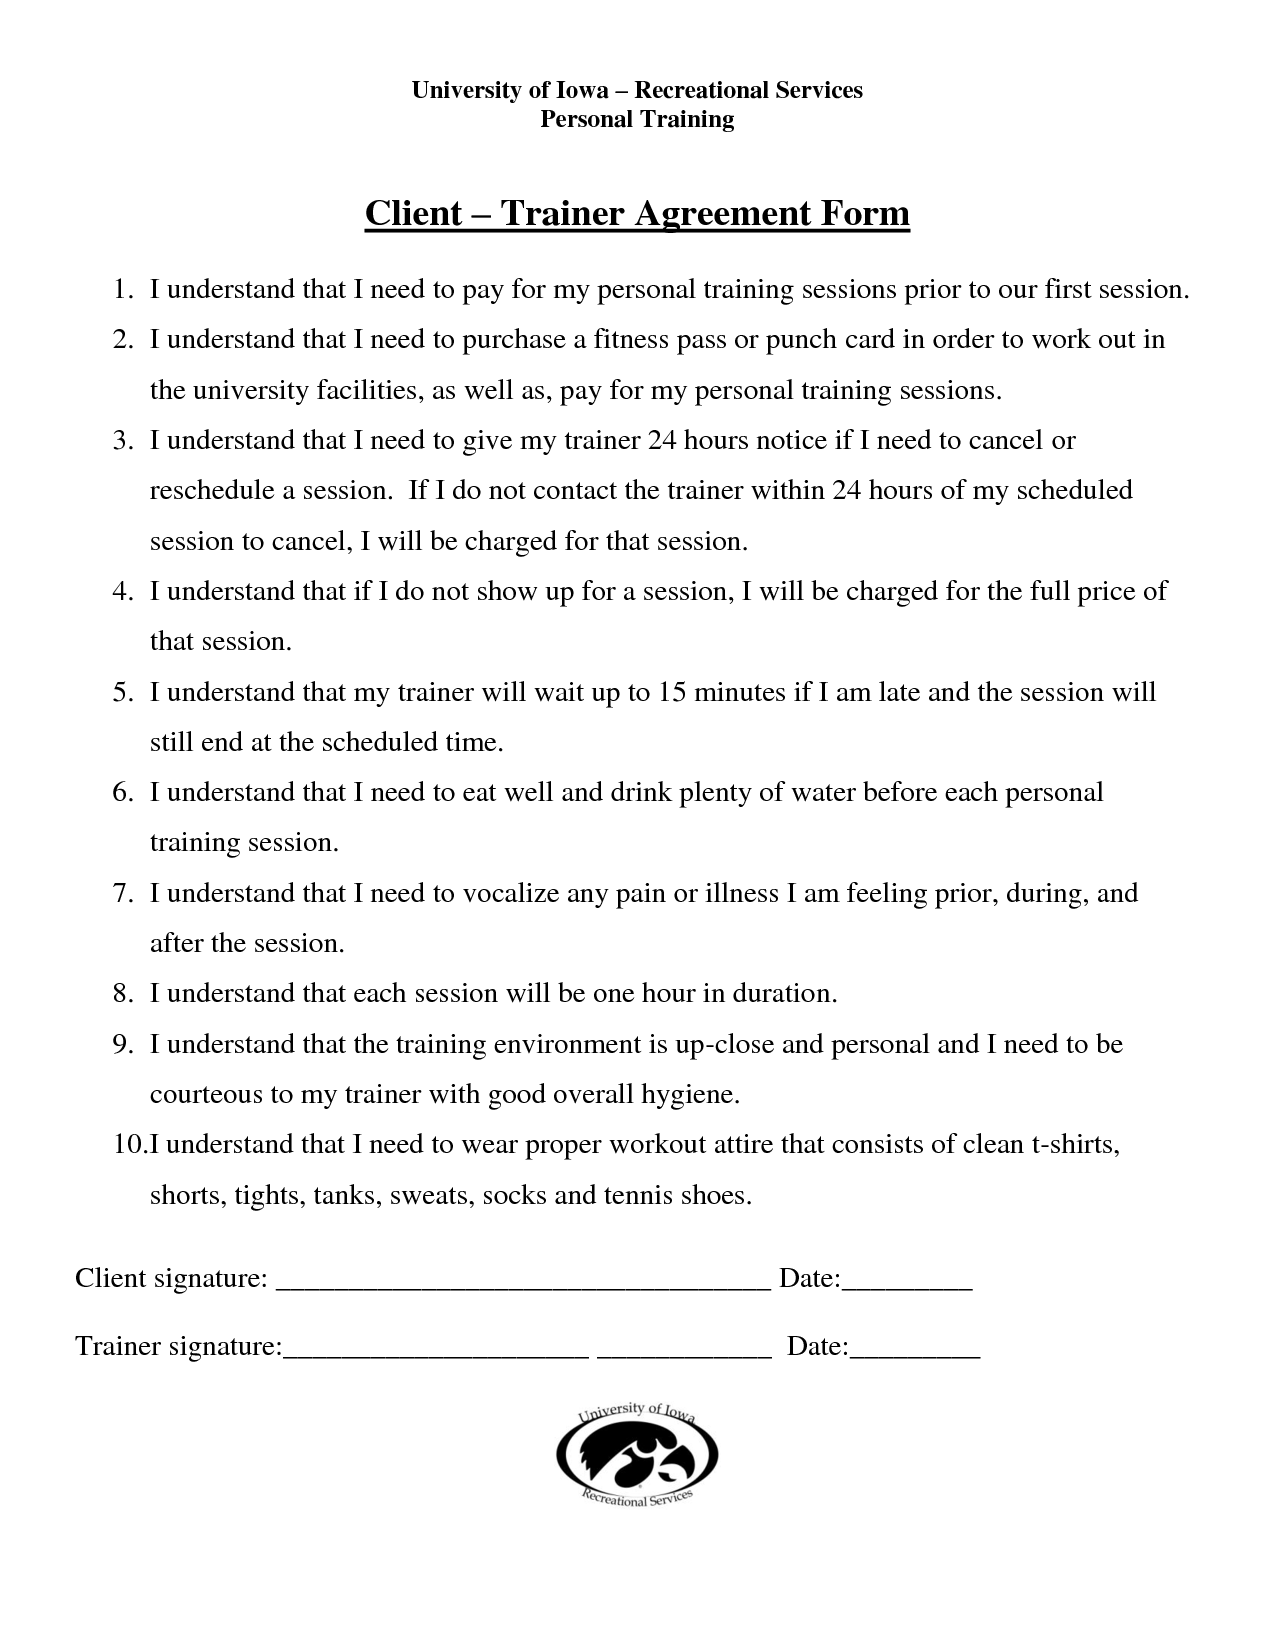 Personal Training Agreement Free Printable Documents